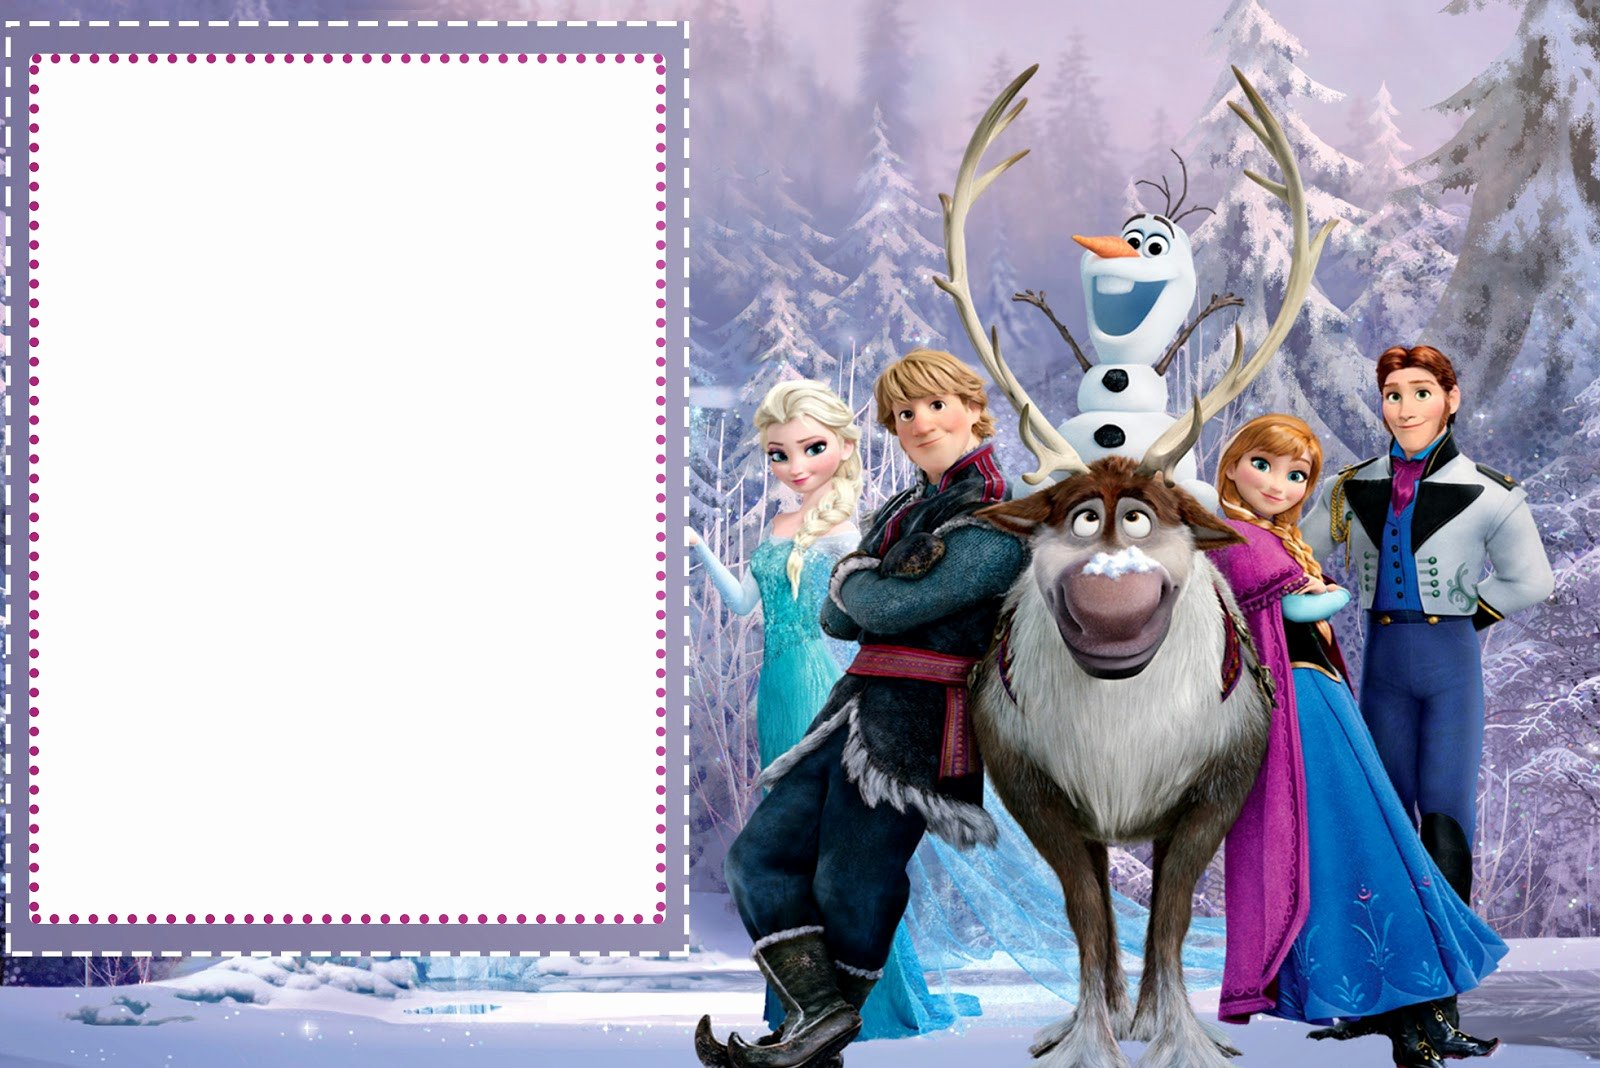 Free Frozen Invitations Templates Awesome Free Printable Frozen Birthday Invitations Anna and Elsa